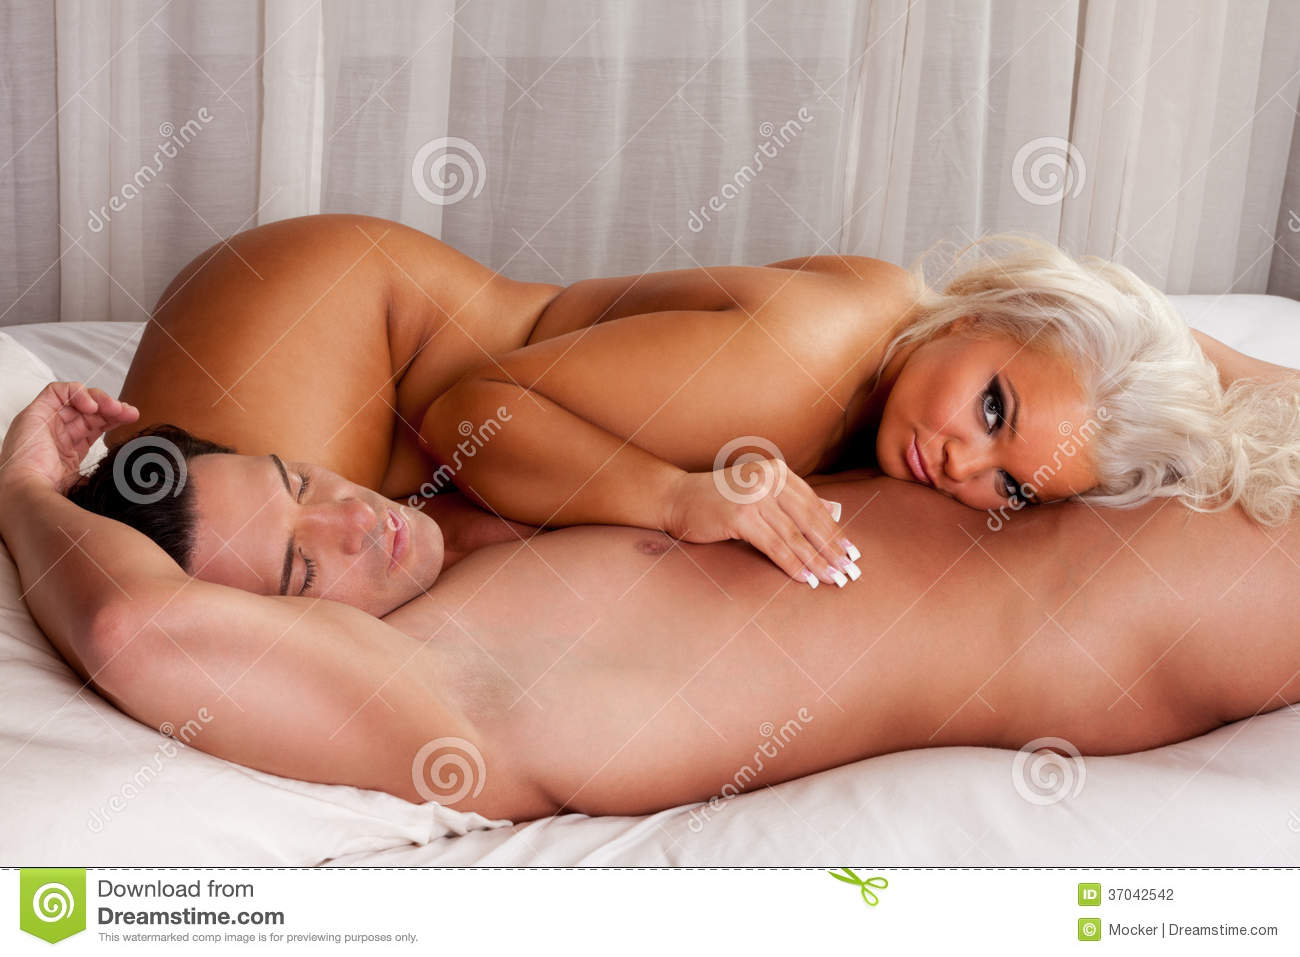 couples sex nude bed